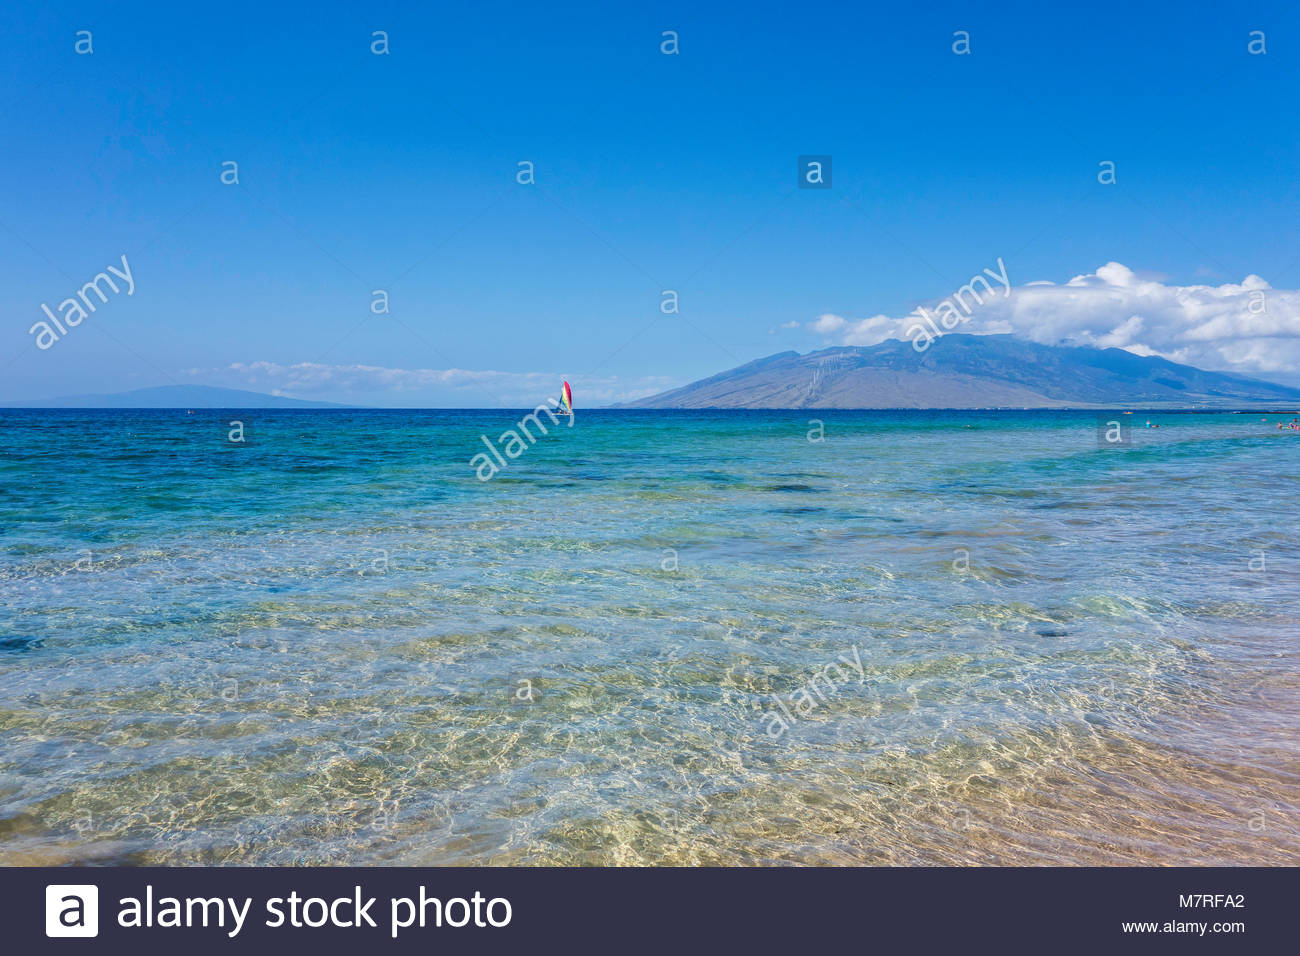 West Maui Mountains from Keawakapu Beach with gentle surf on the Pacific island of Maui in the state of Hawaii USA - Stock Image